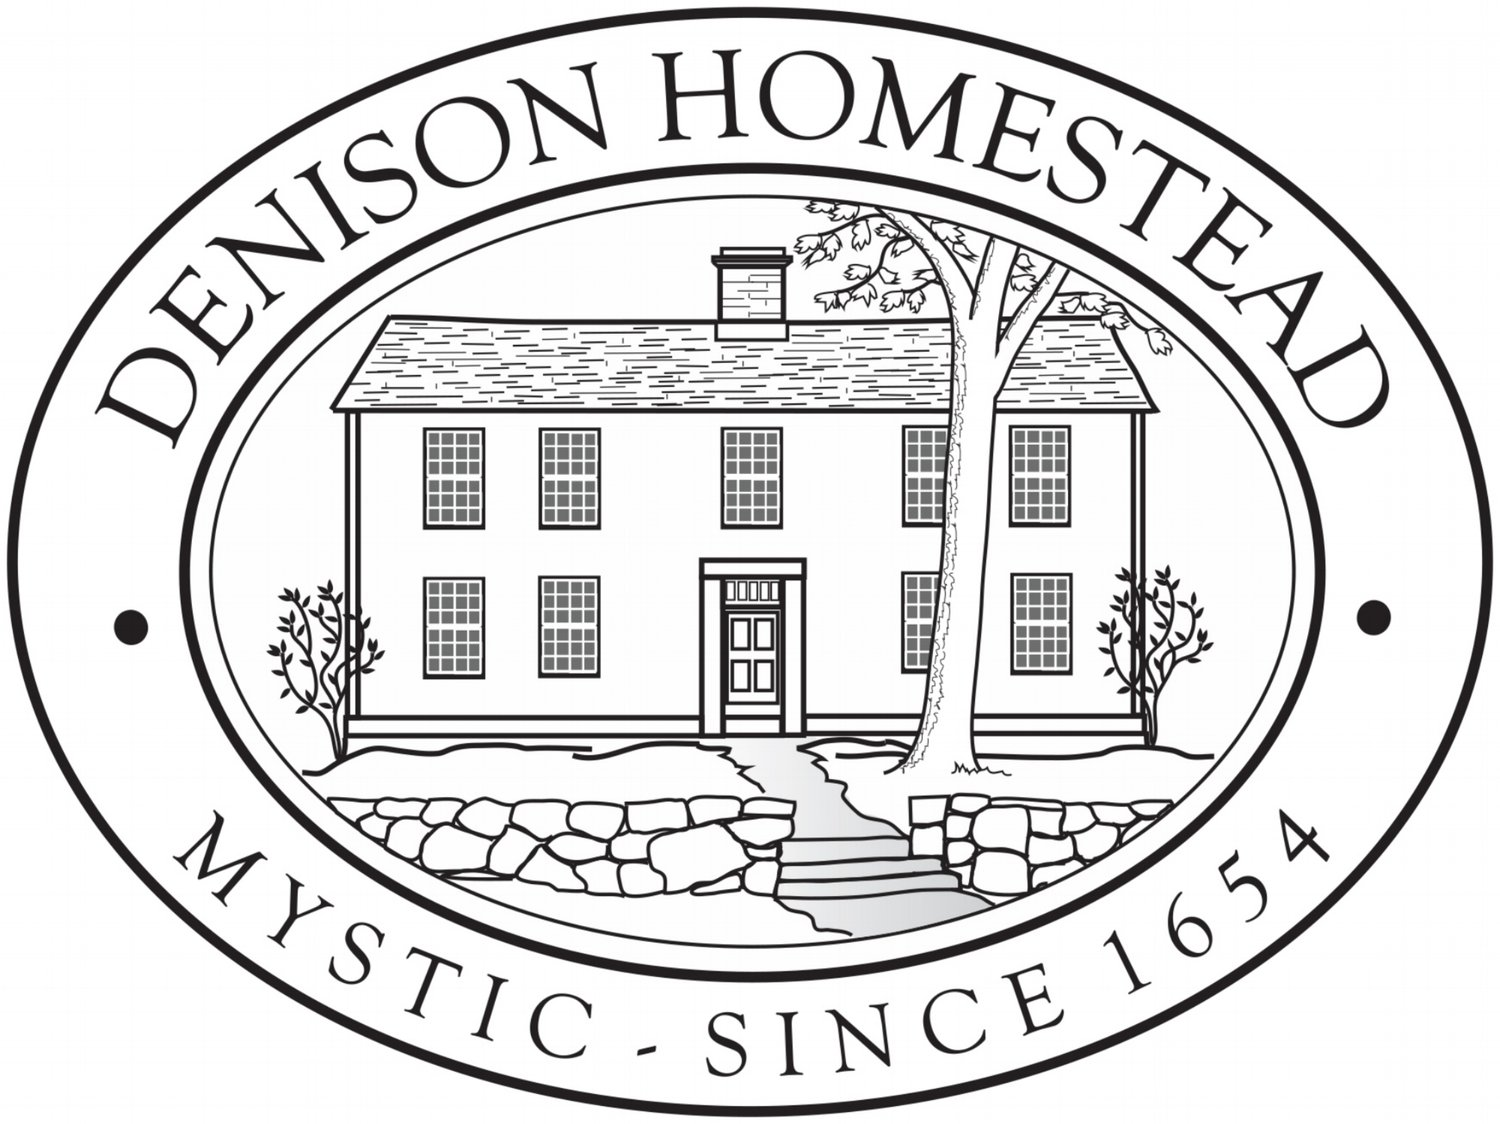 Dennison Homestead (tentative) - Mystic Ct @ Dennison Homestead Museum